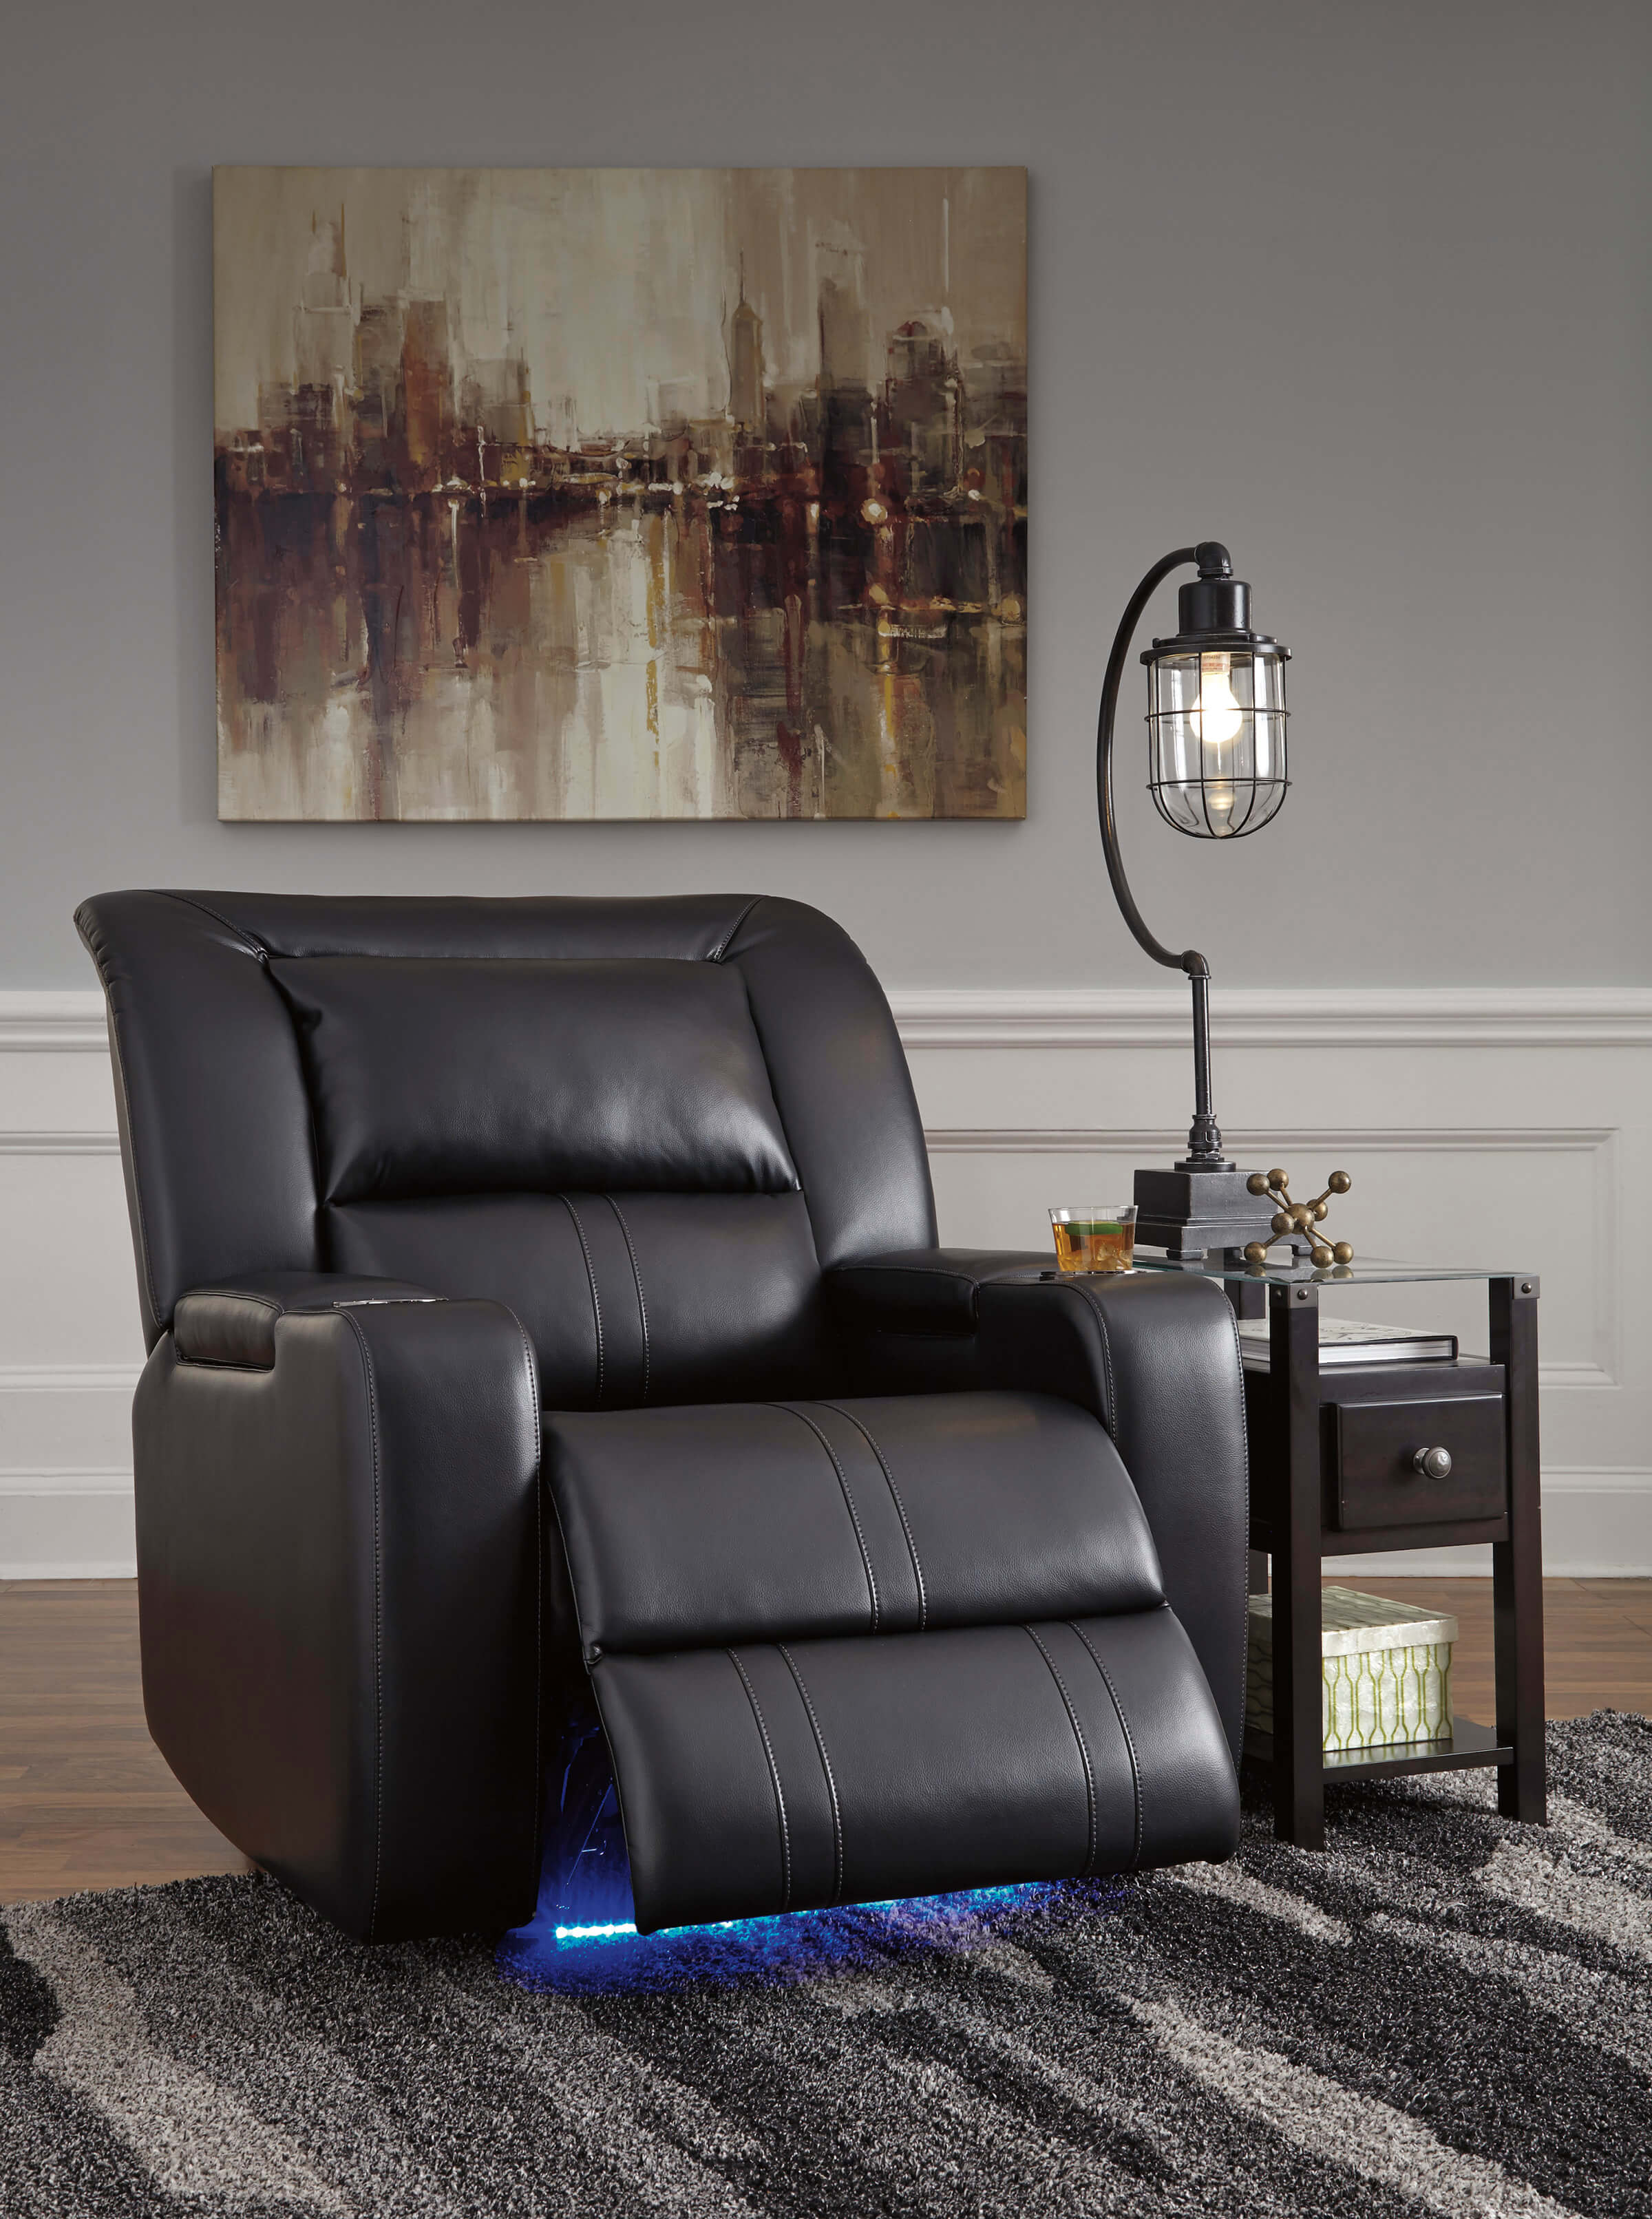 Dossman Home Theater Seats Recliners